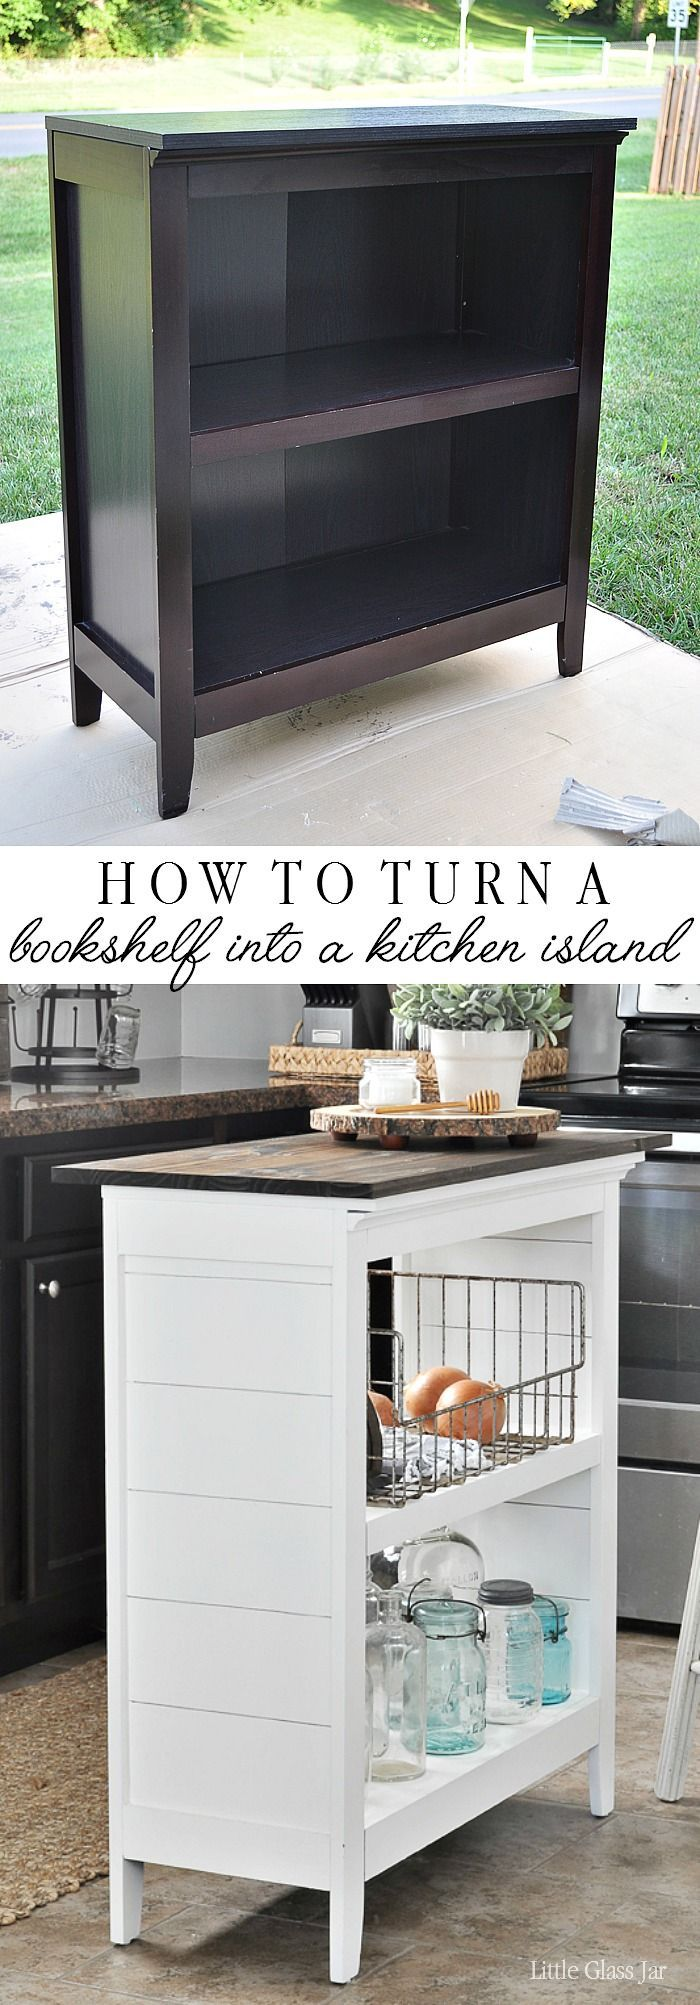 Turn an old bookcase into a kitchen island